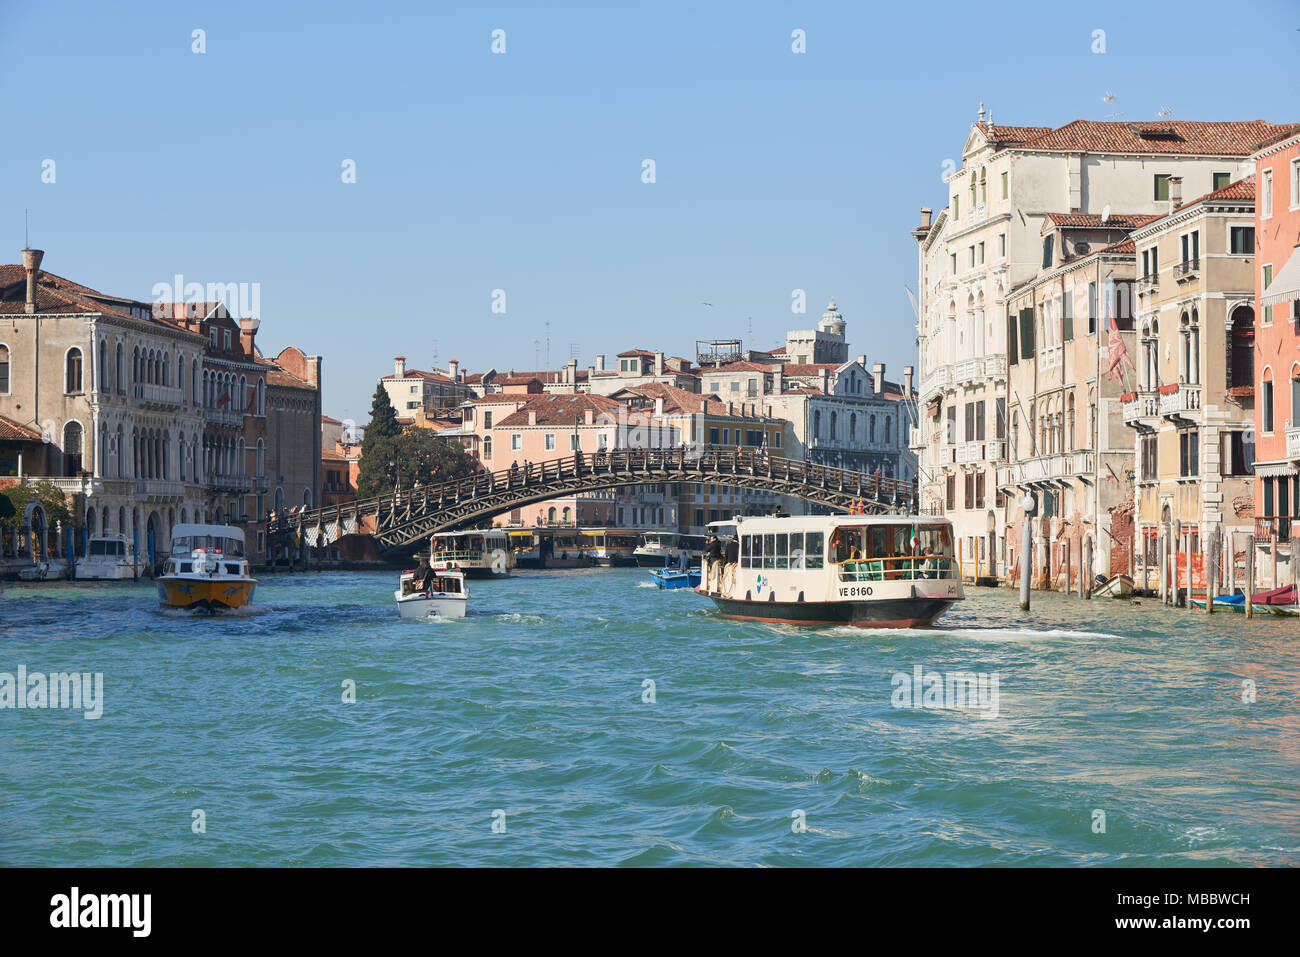 Venice, Italy - Febuary 19, 2016: Ponte dell'Accademia in Venice, a city resignated as a World Heritage site in italy. It is famous for the beauty of  - Stock Image